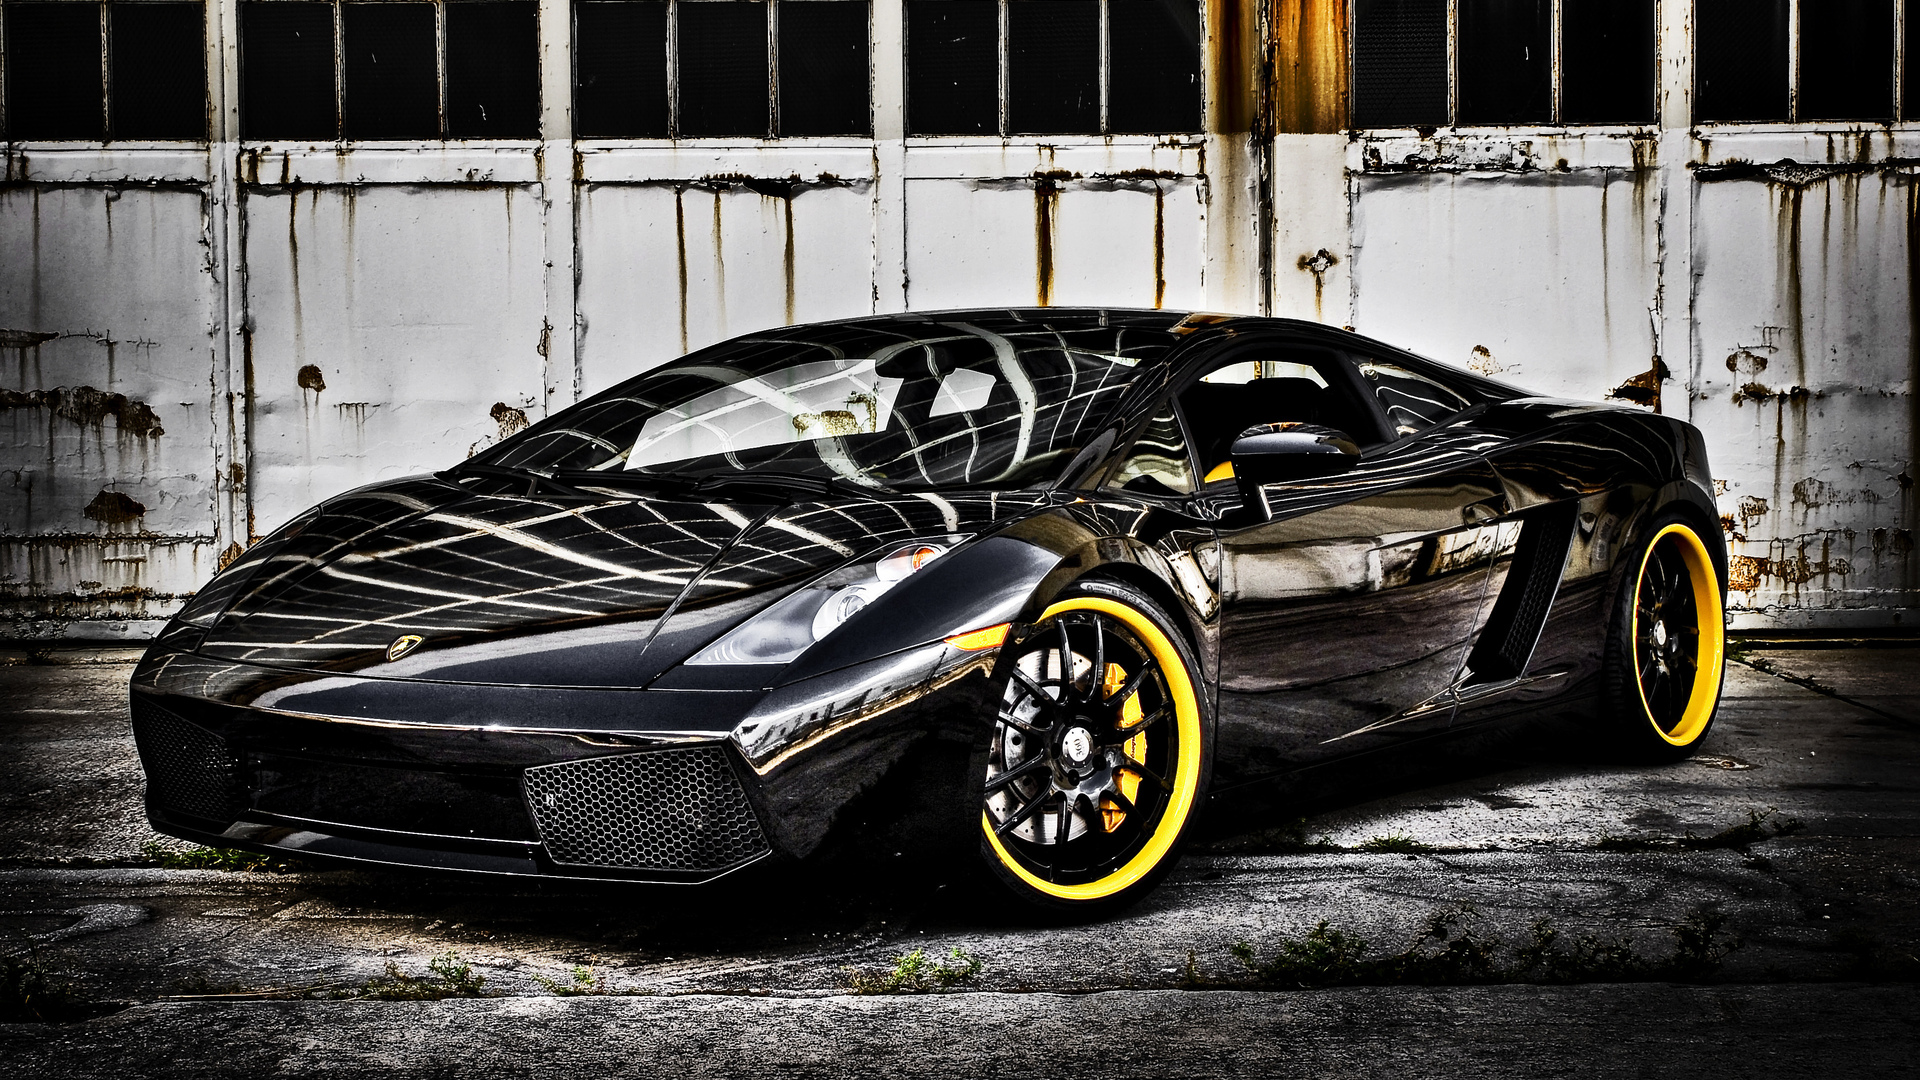 cars, auto wallpapers, авто обои, gallardo, тачки, lamborghini